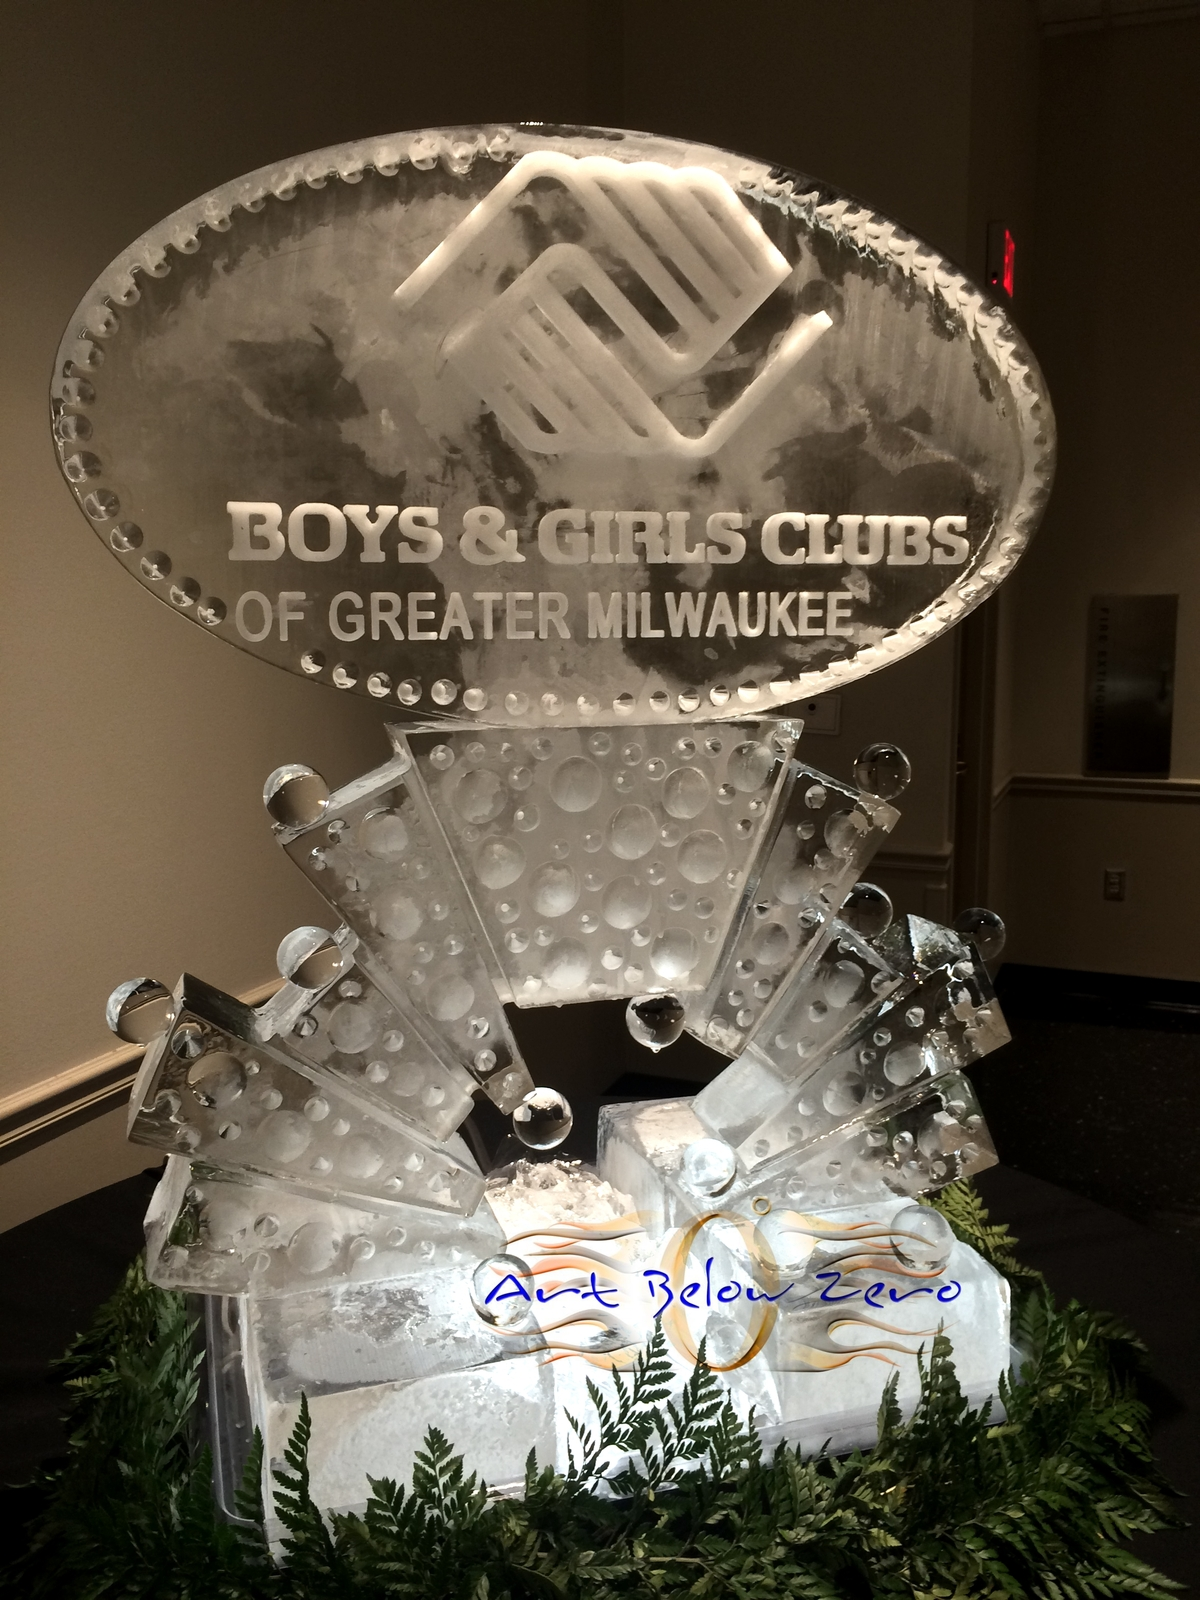 Boys___girls_clubs_of_greater_milwaukee_ice_sculpture